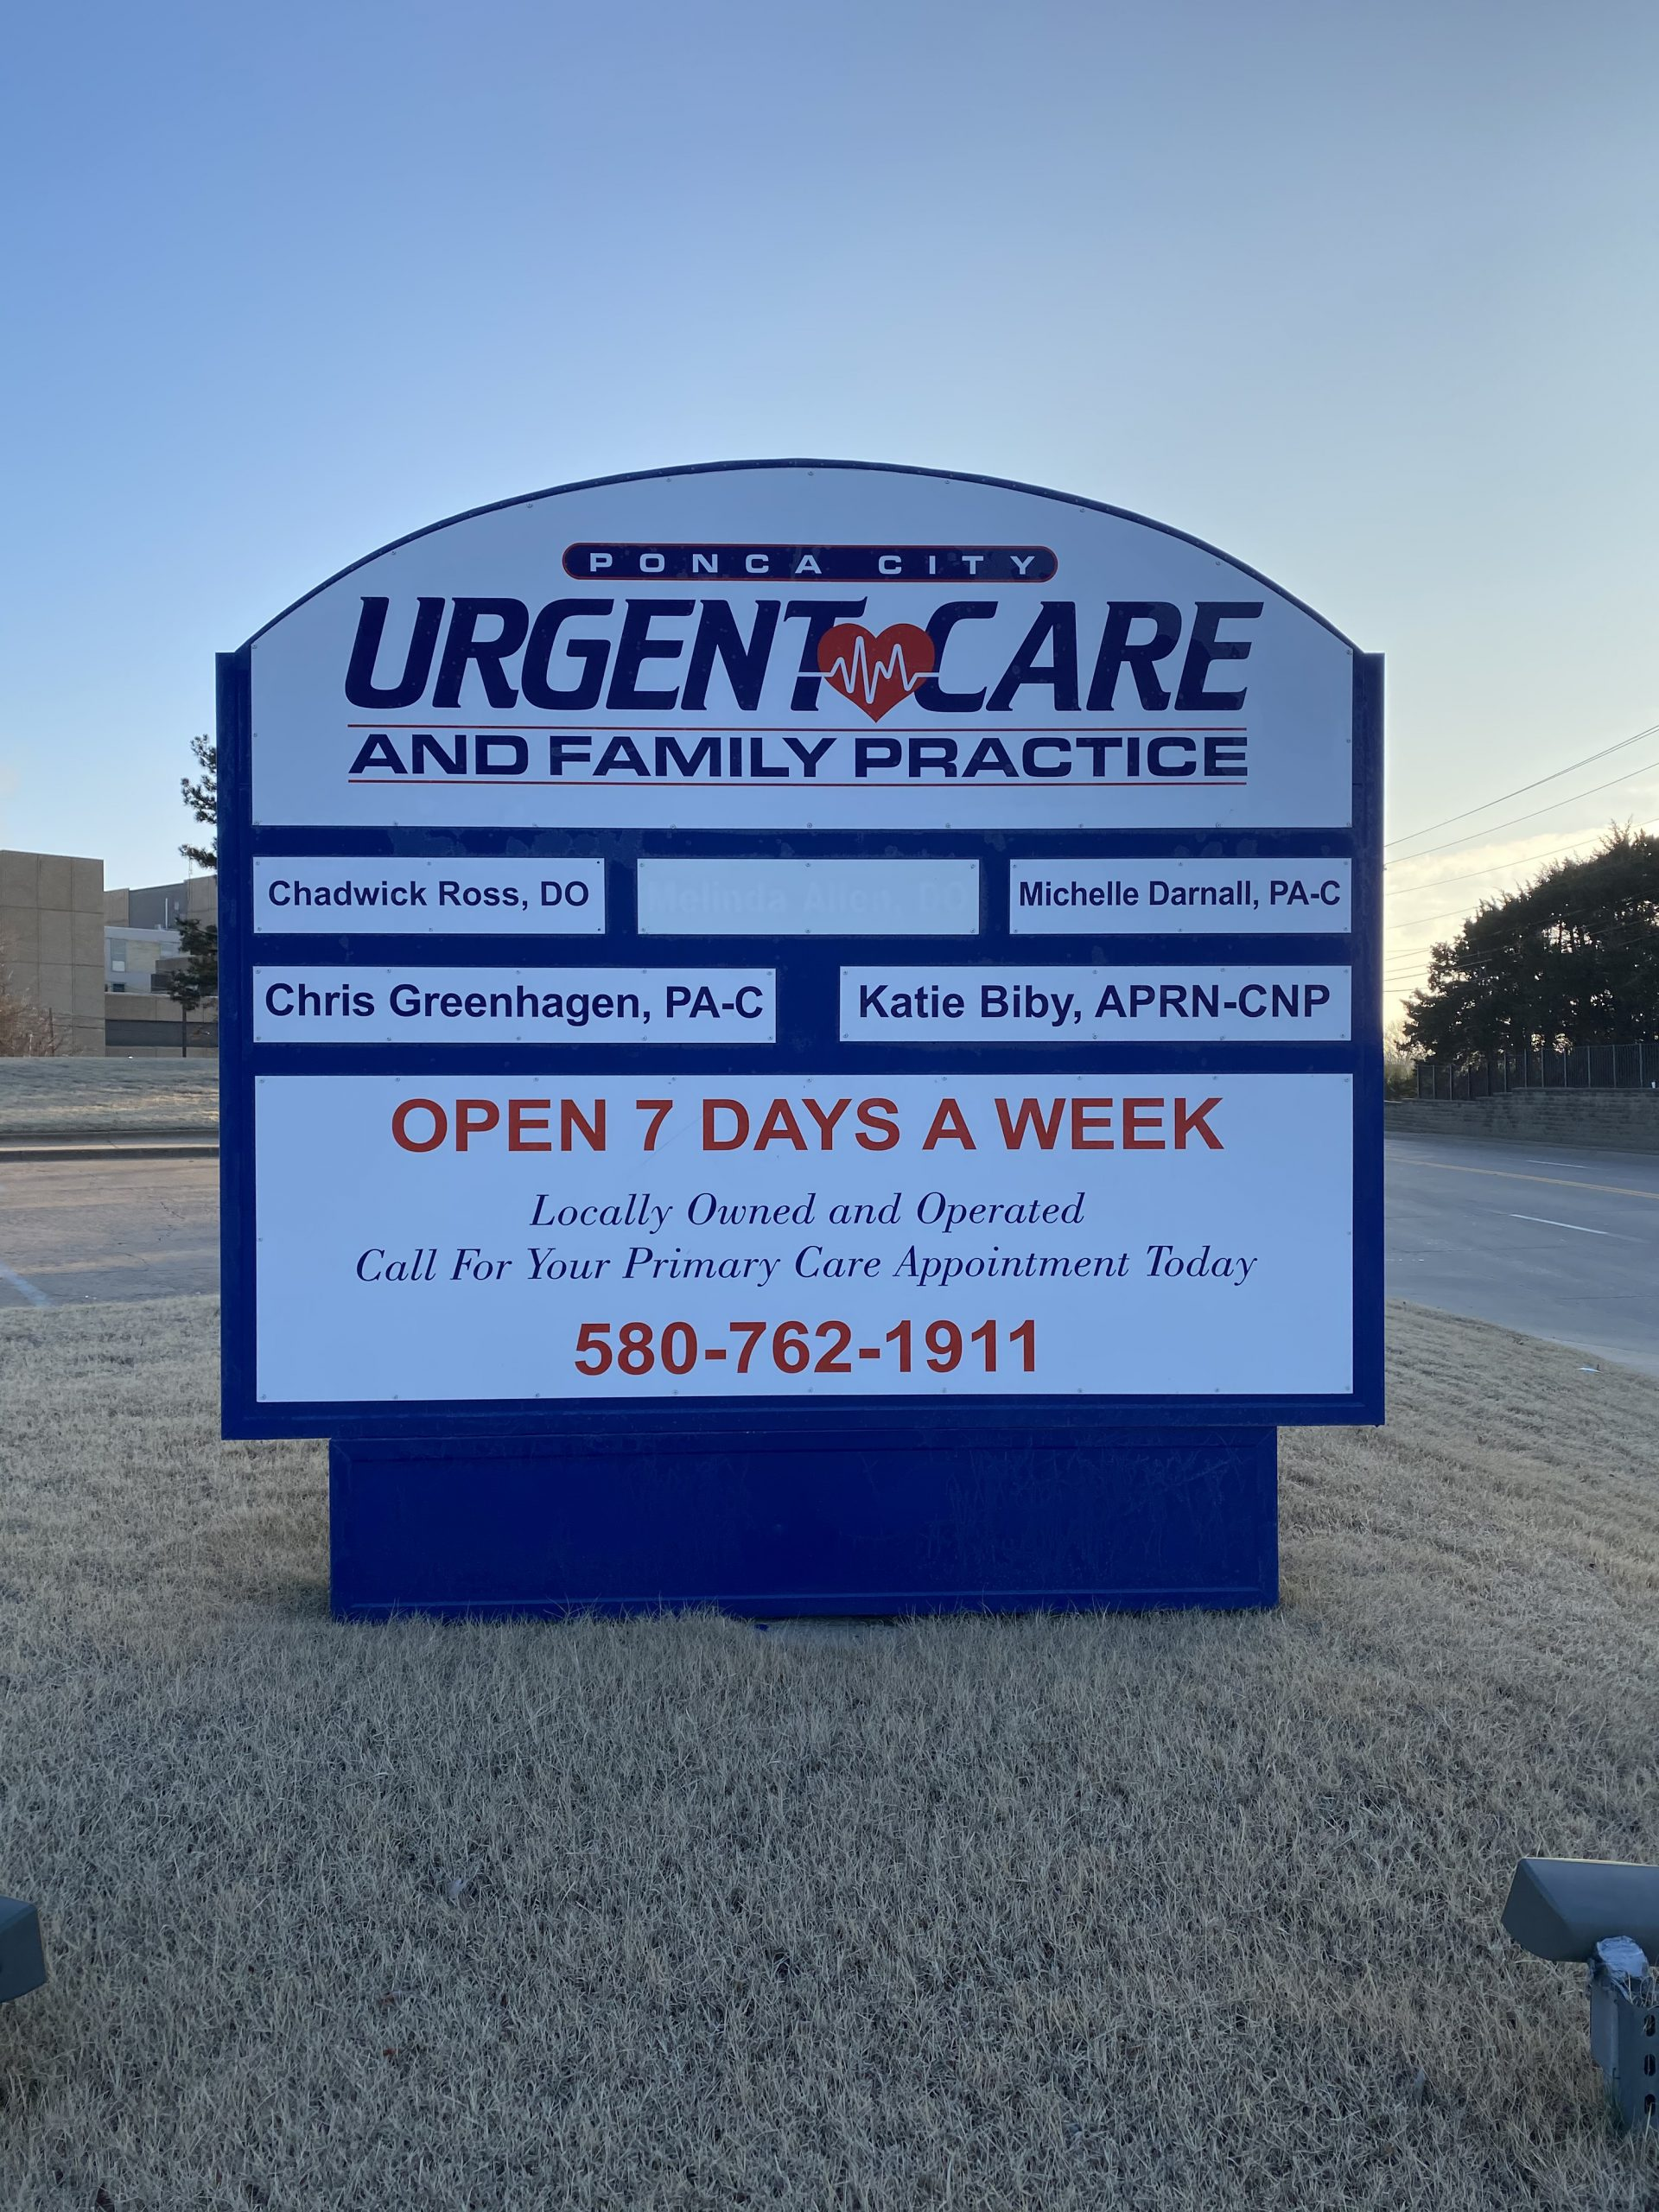 ponca city urgent care and family doctor